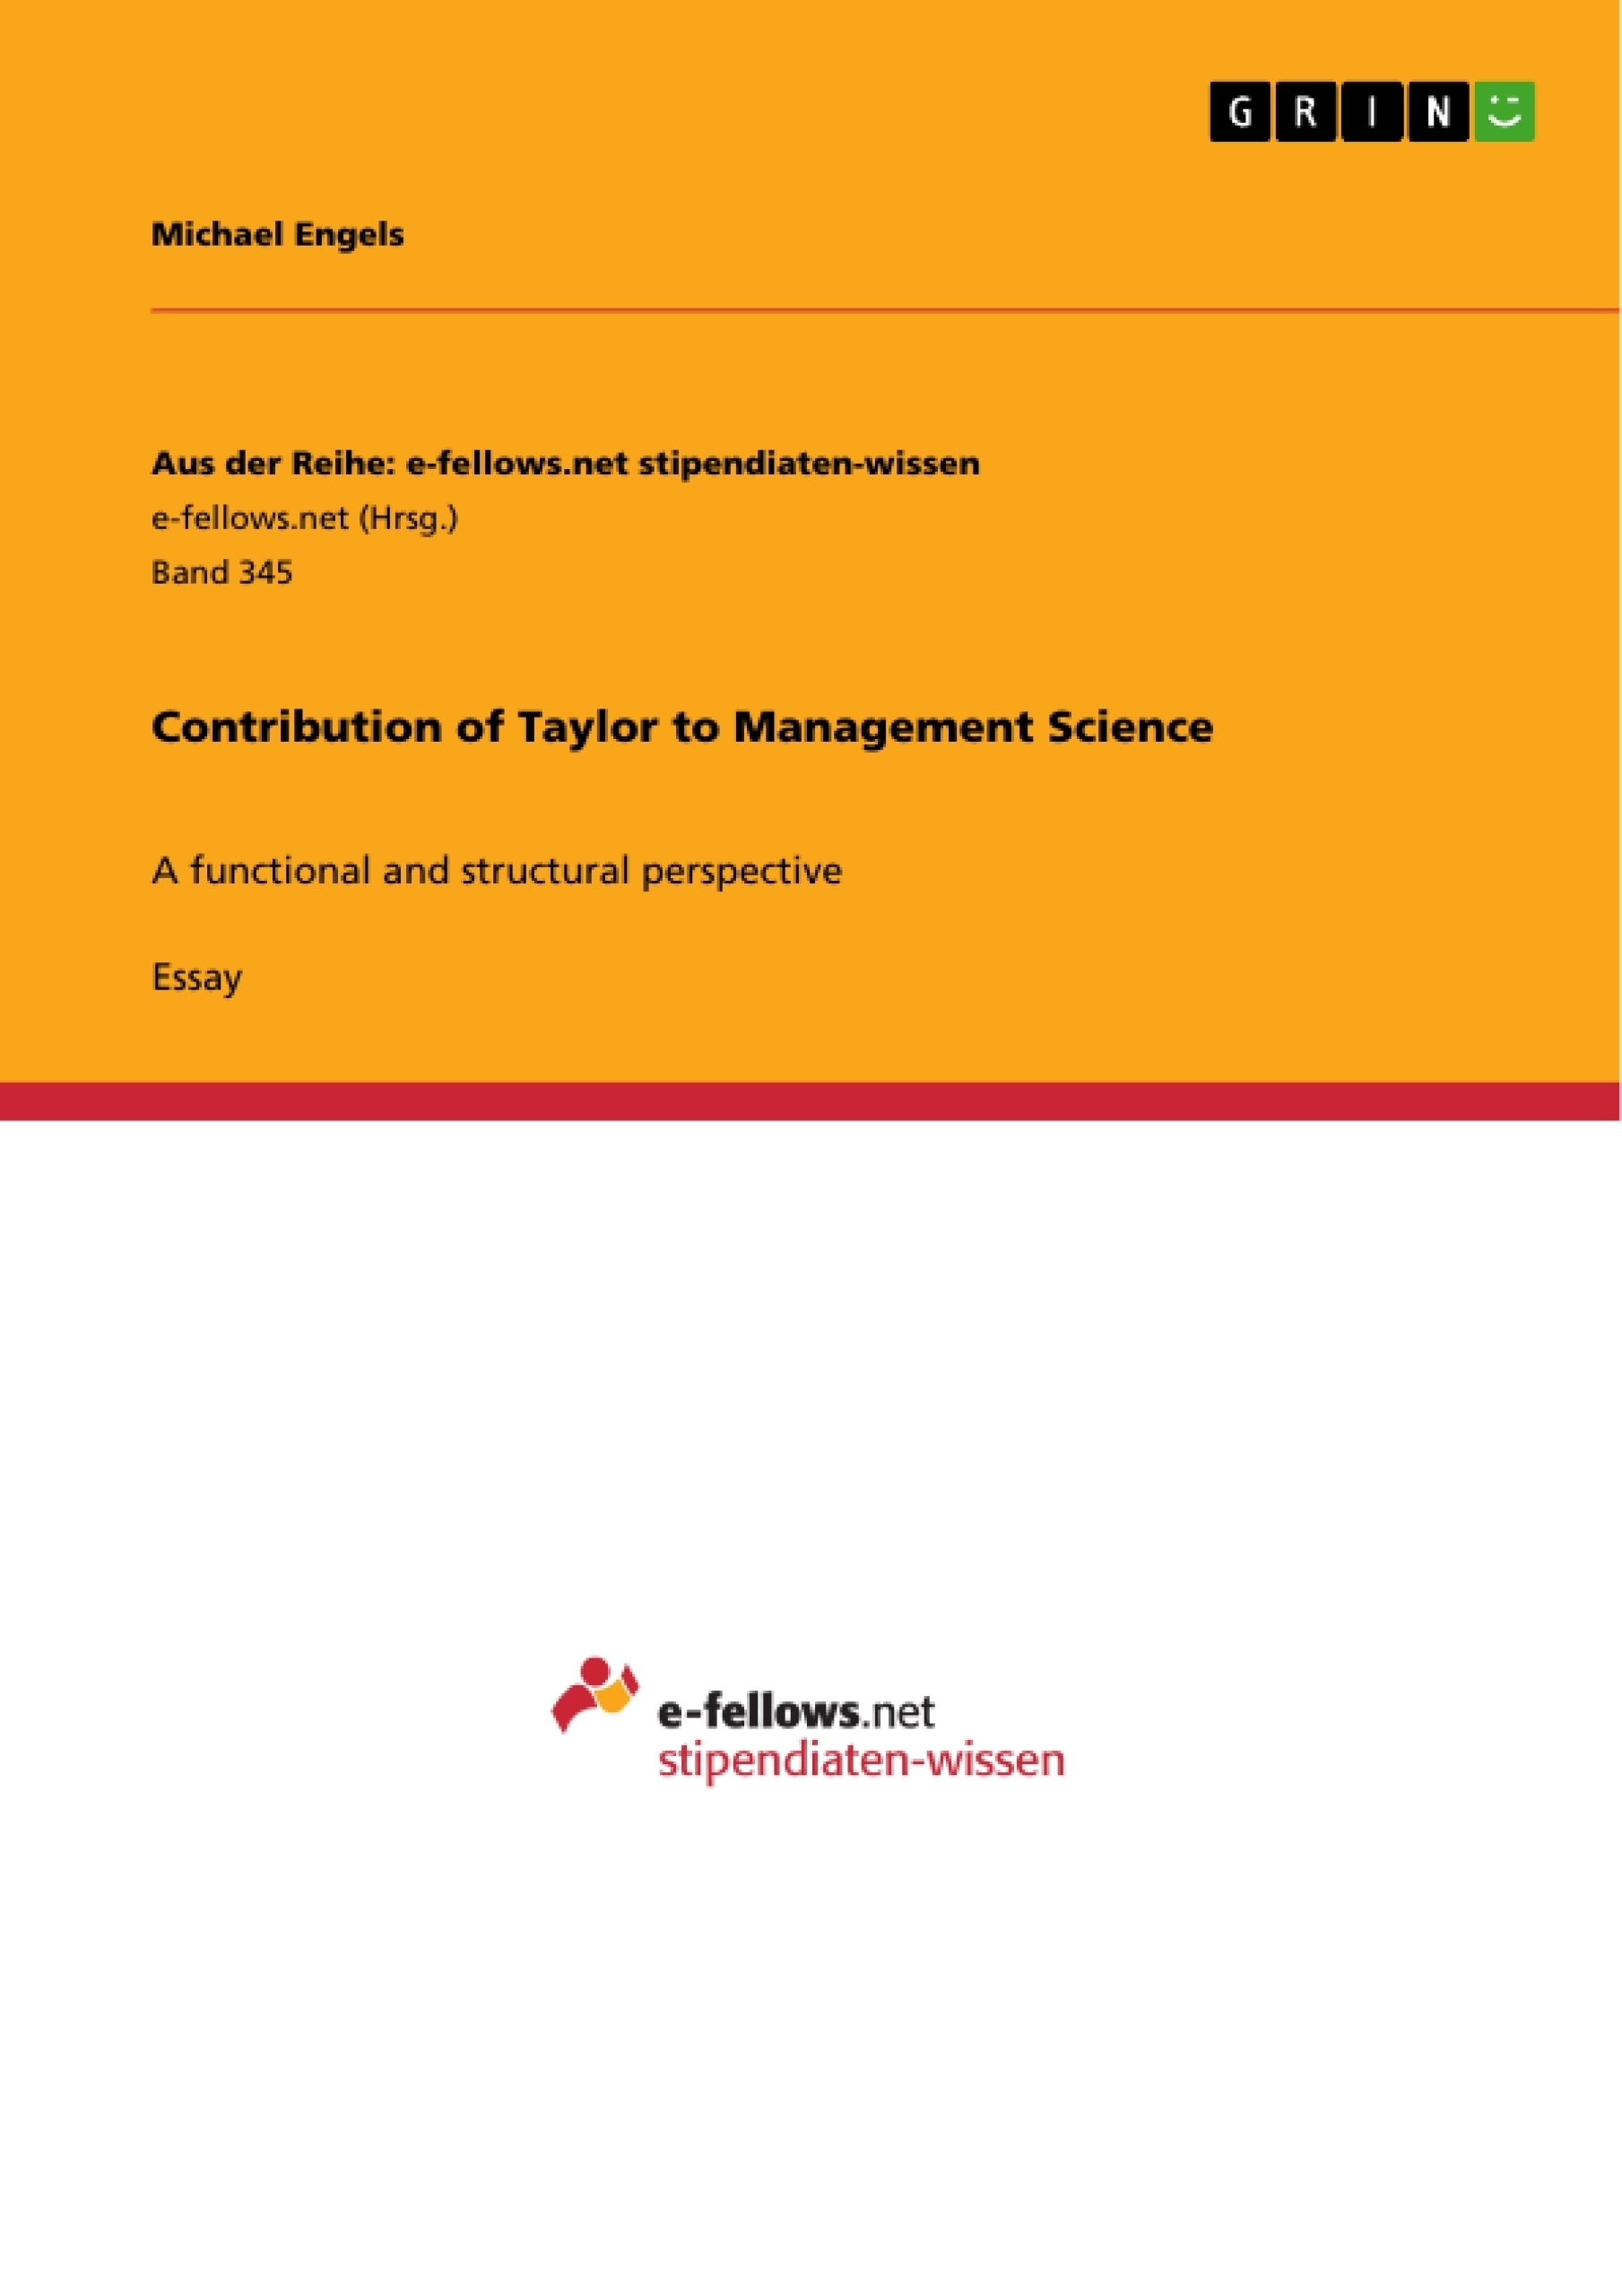 scientific management critical essay 91 121 113 106 alfred marshall s critical analysis of scientific management classes